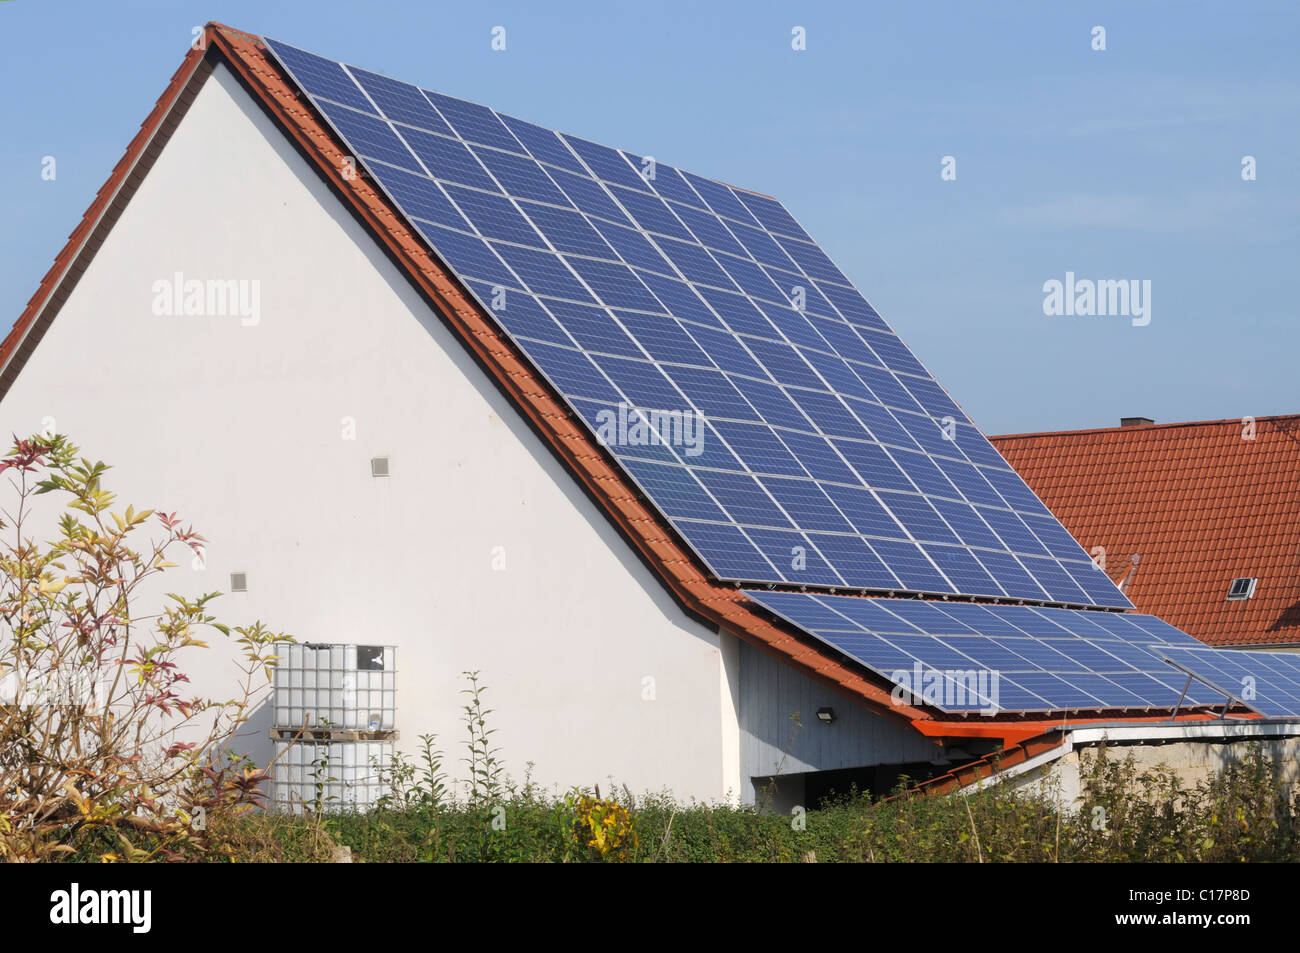 Large roof with with solar collectors in a village - Stock Image